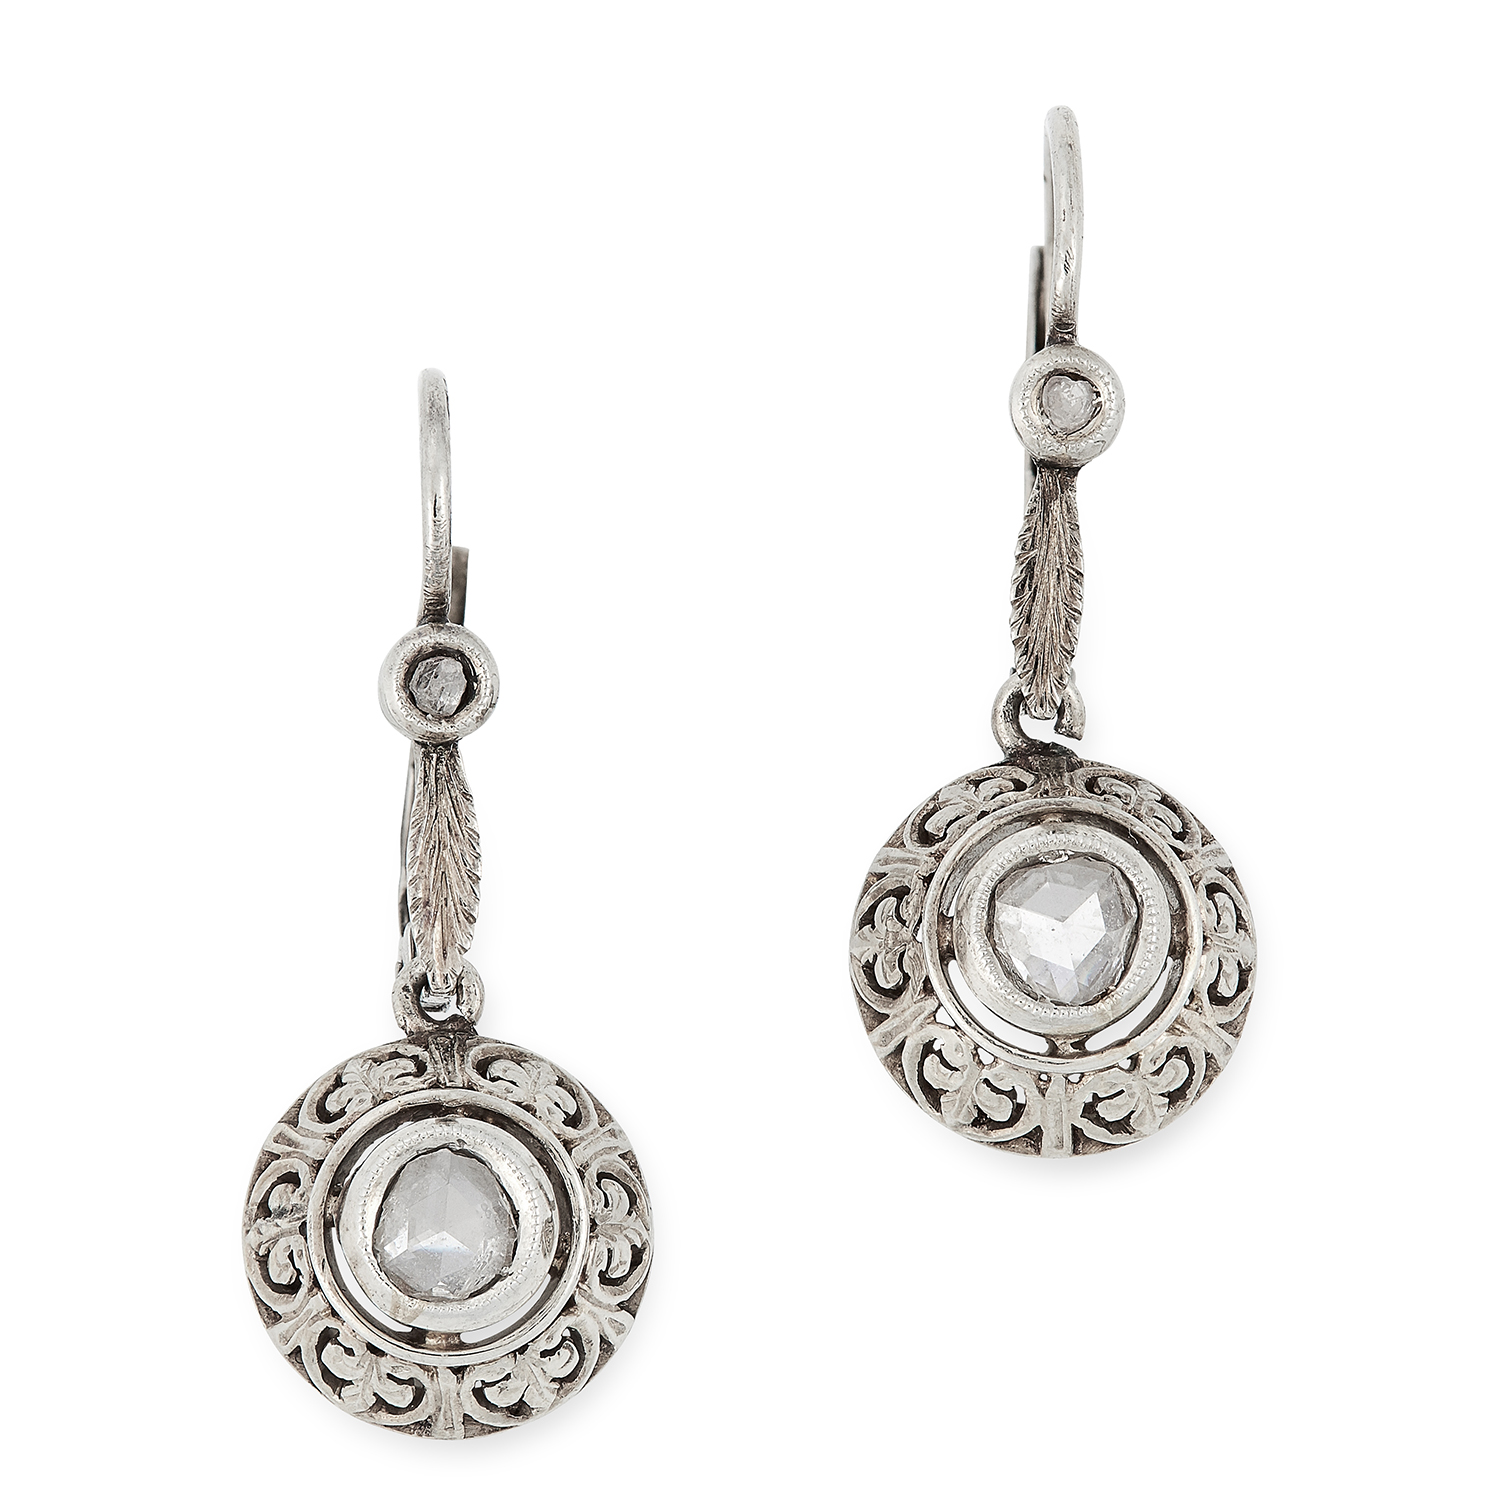 DIAMOND DROP EARRINGS each set with a rose cut diamond surrounded by floral motifs, below a